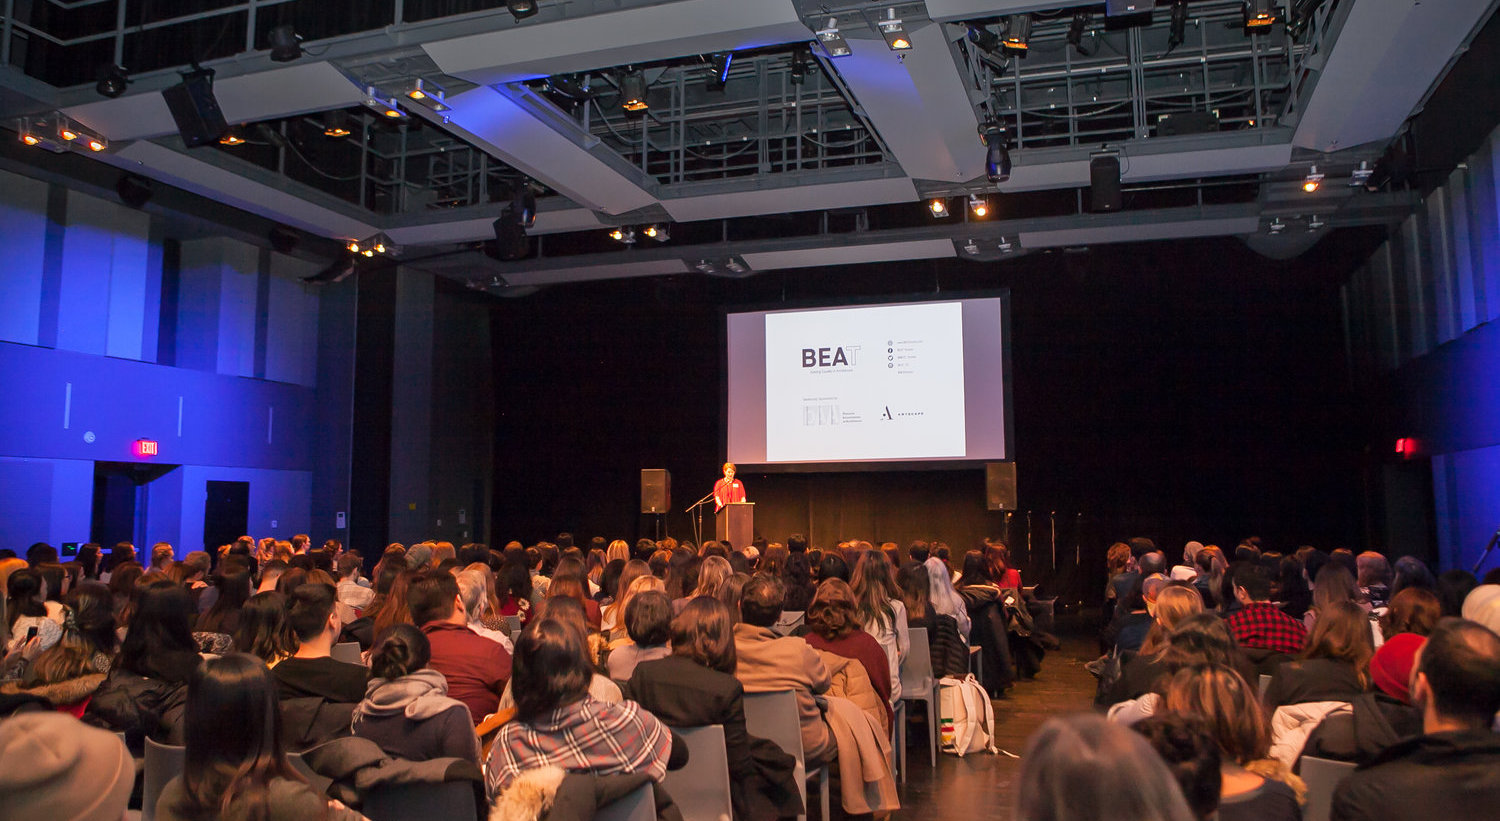 The fifth annual BEAT Leadership Seminar comes to the Toronto Reference Library in March. Photo via BEAT.